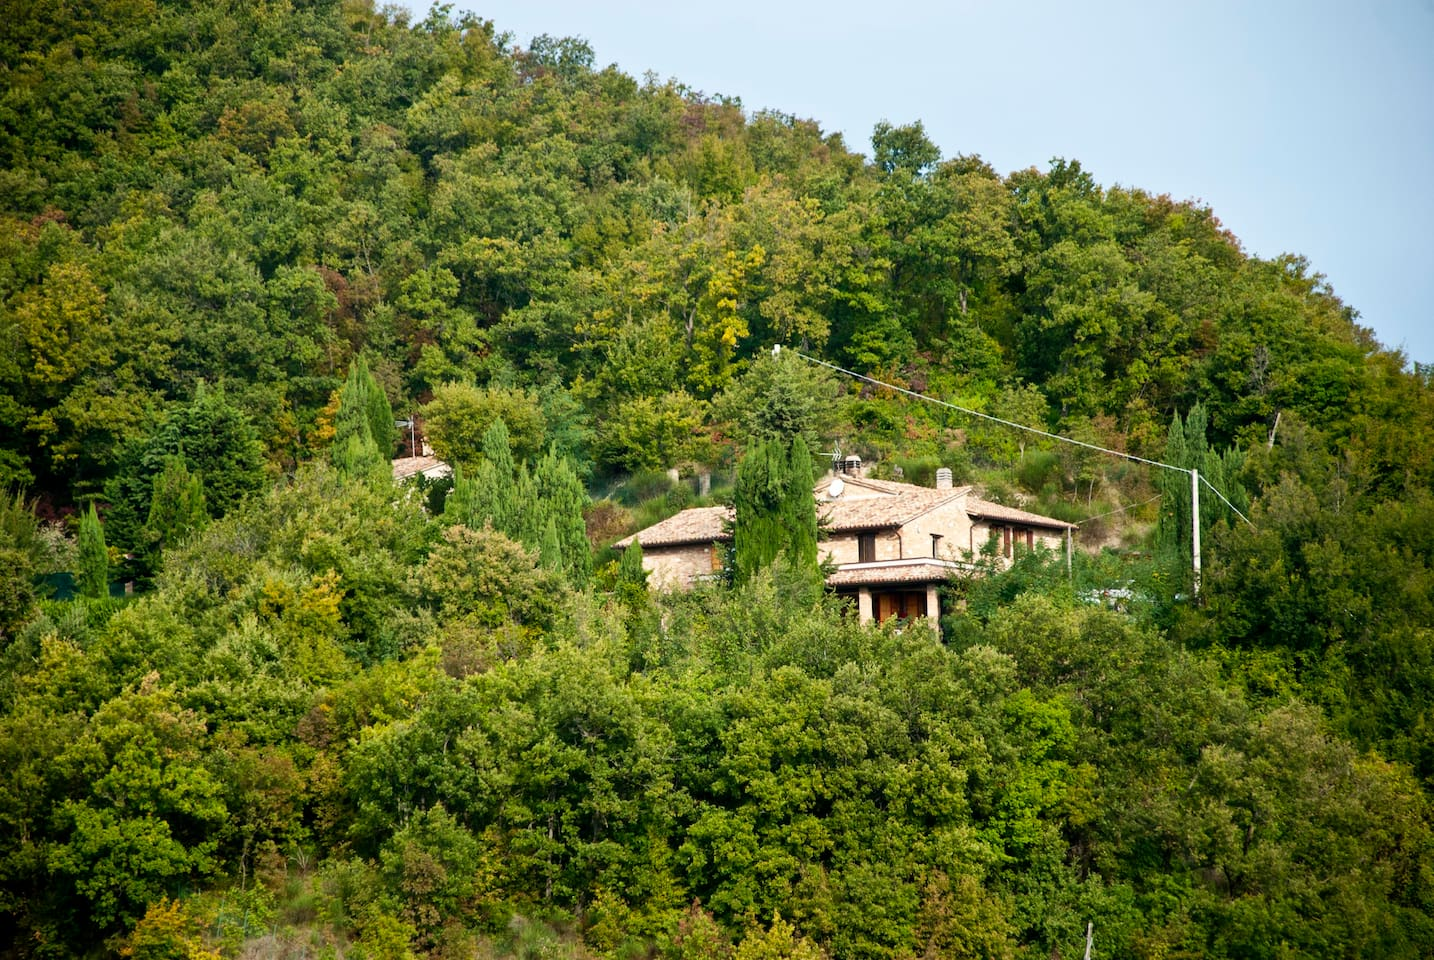 Calmancino delle Selve - view of the houses